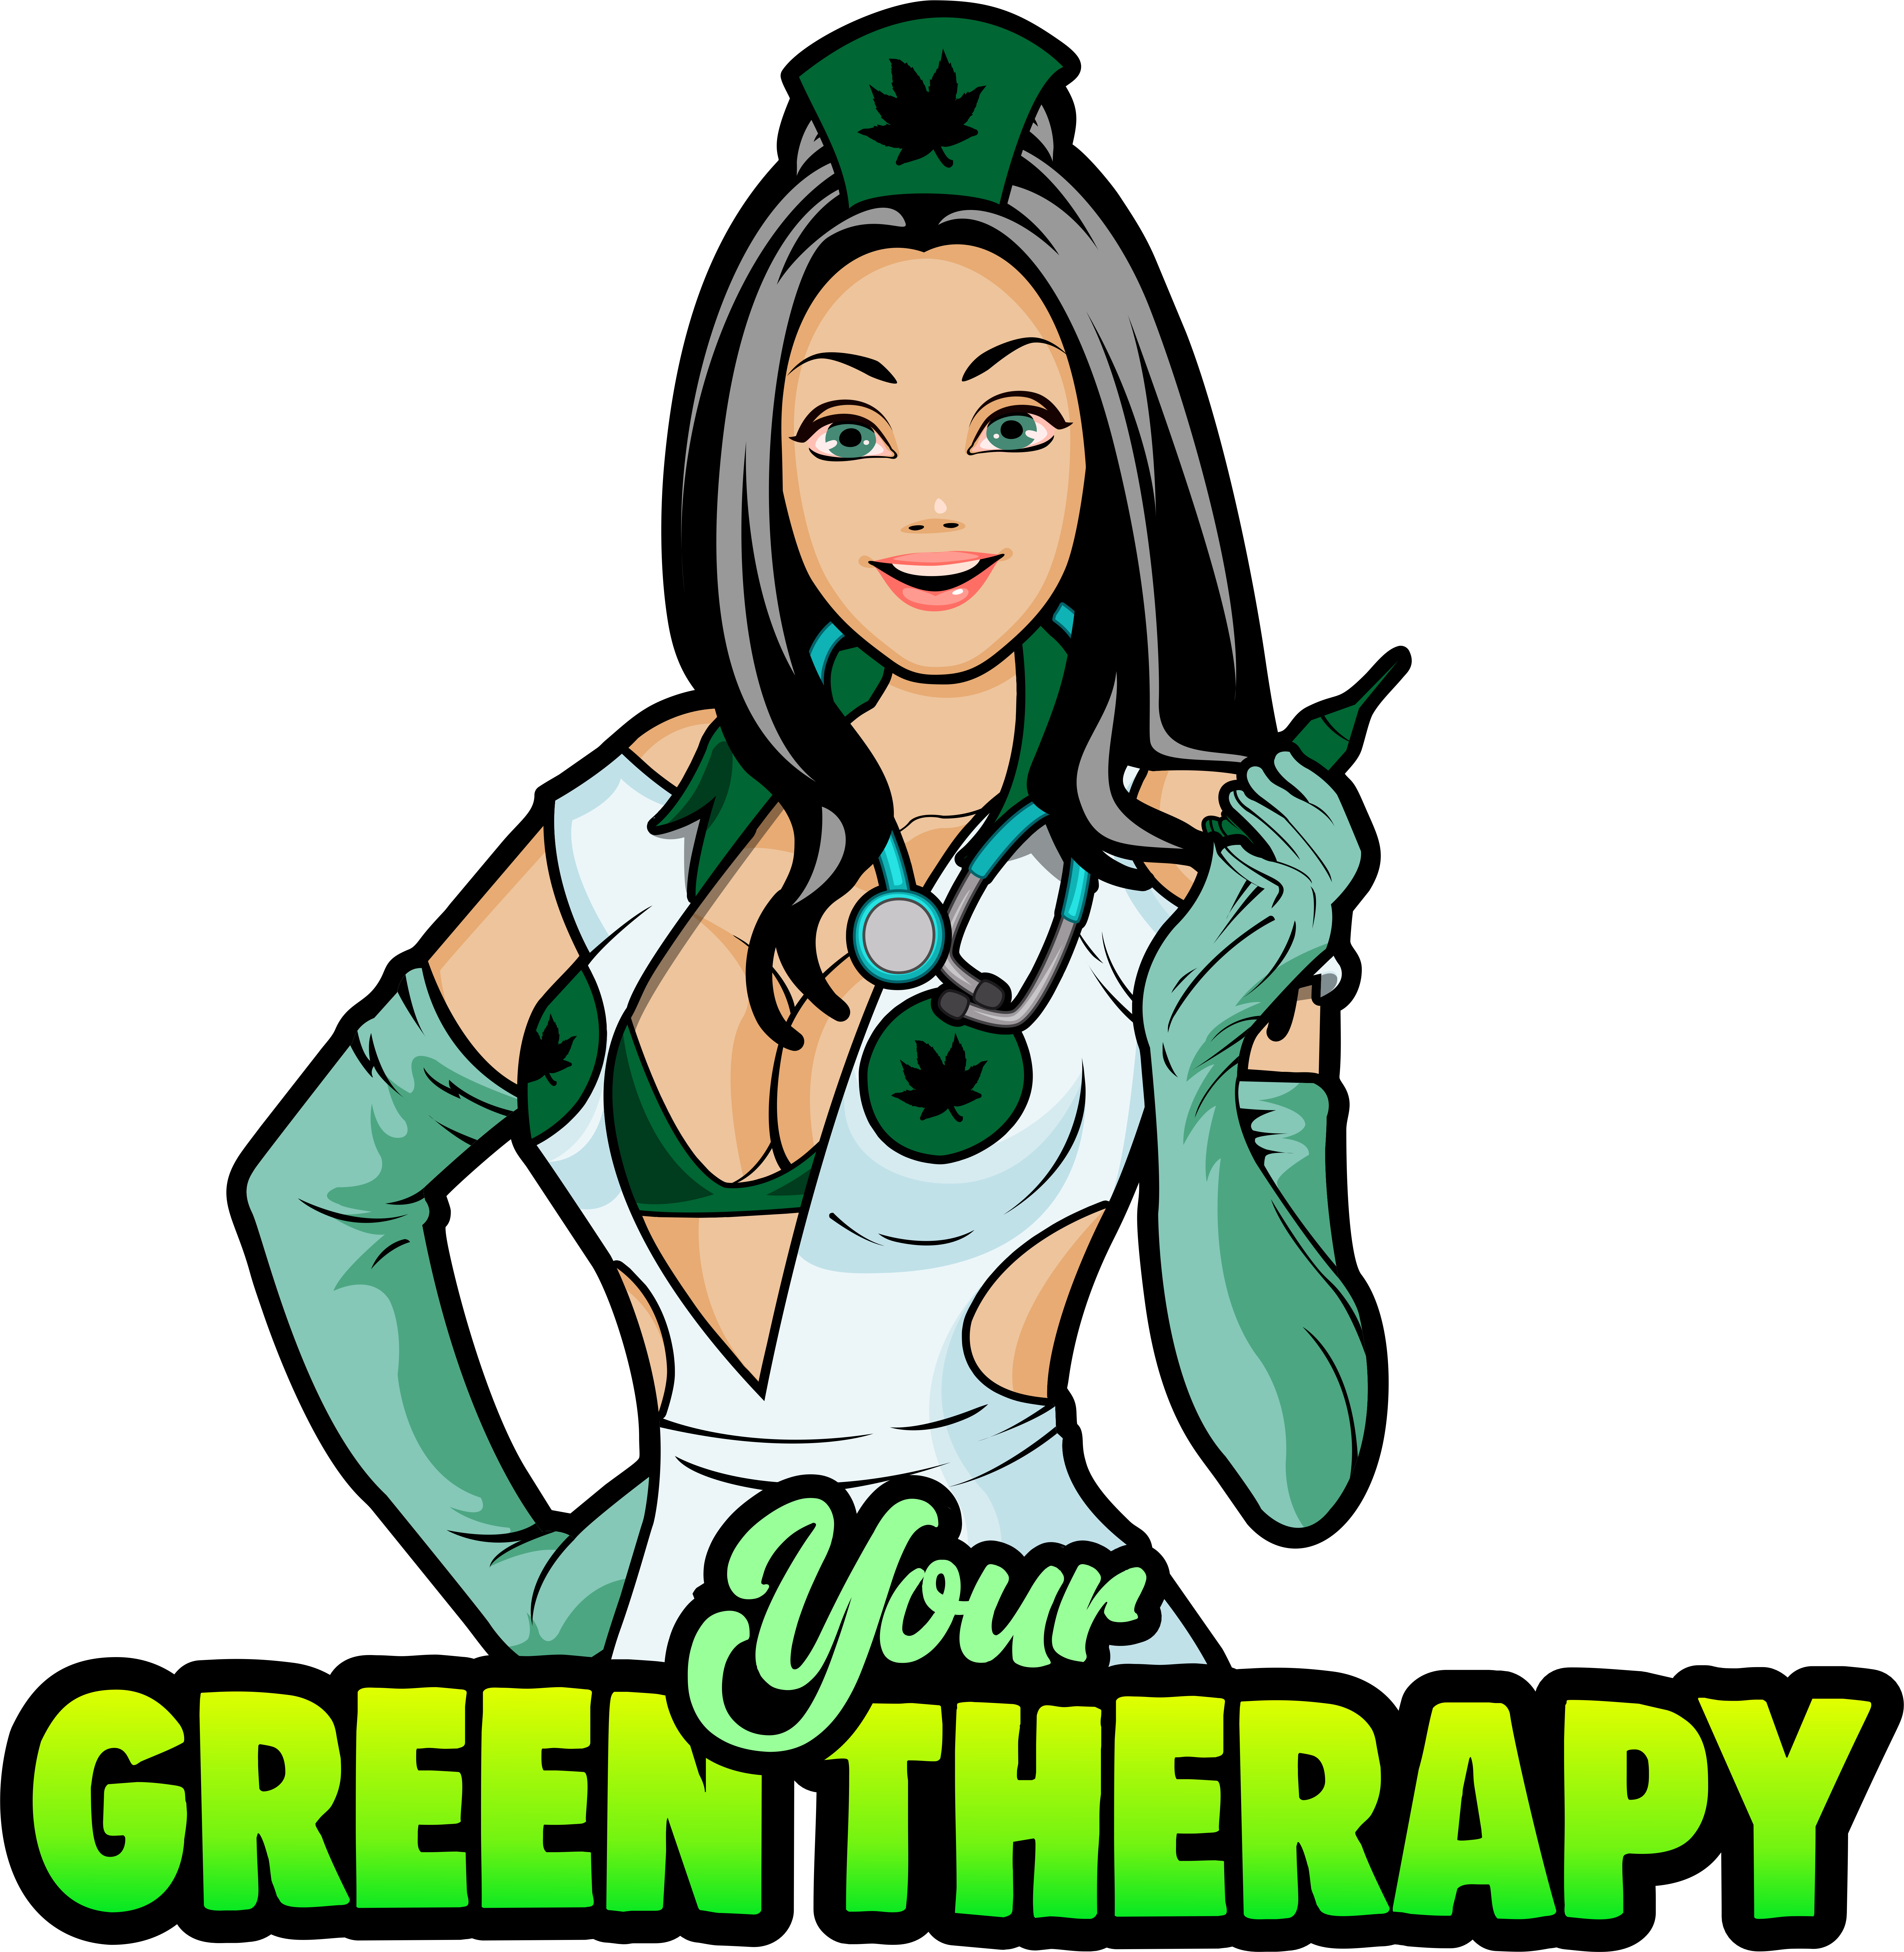 yourgreentherapy.com